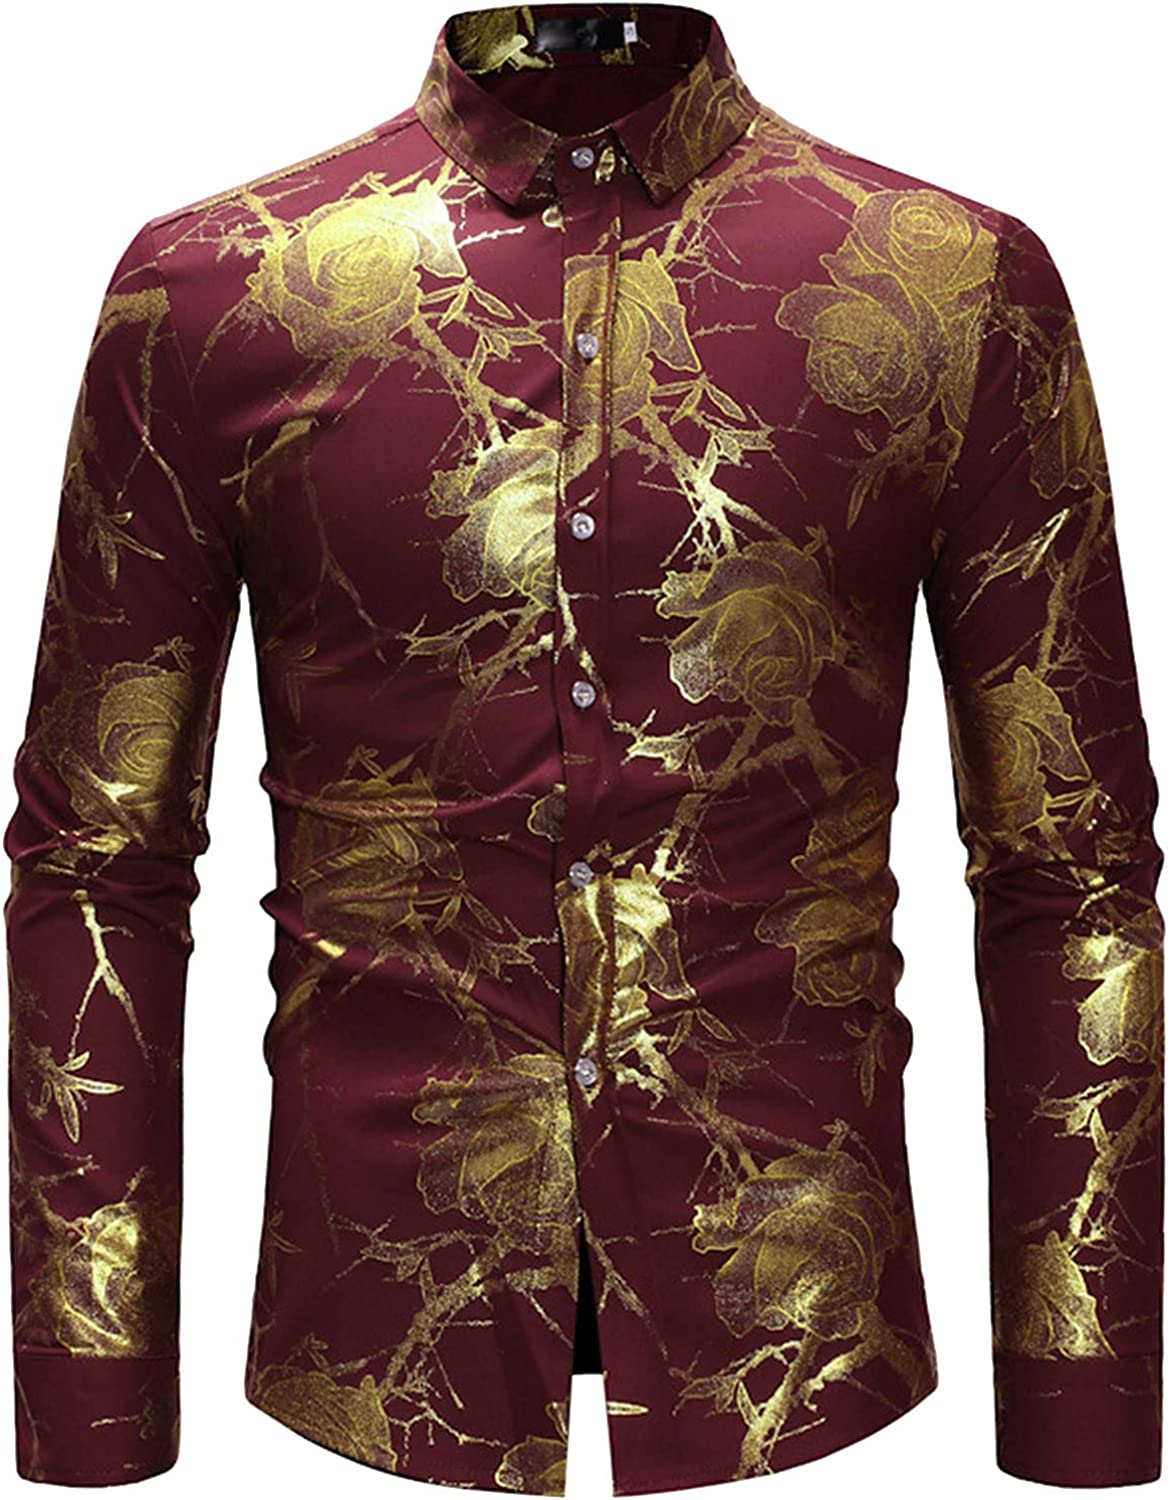 Men's Regular Fit Long Sleeve Dress Shirts Casual Stylish Floral Printing Button Up Casual Work Shirts Tops